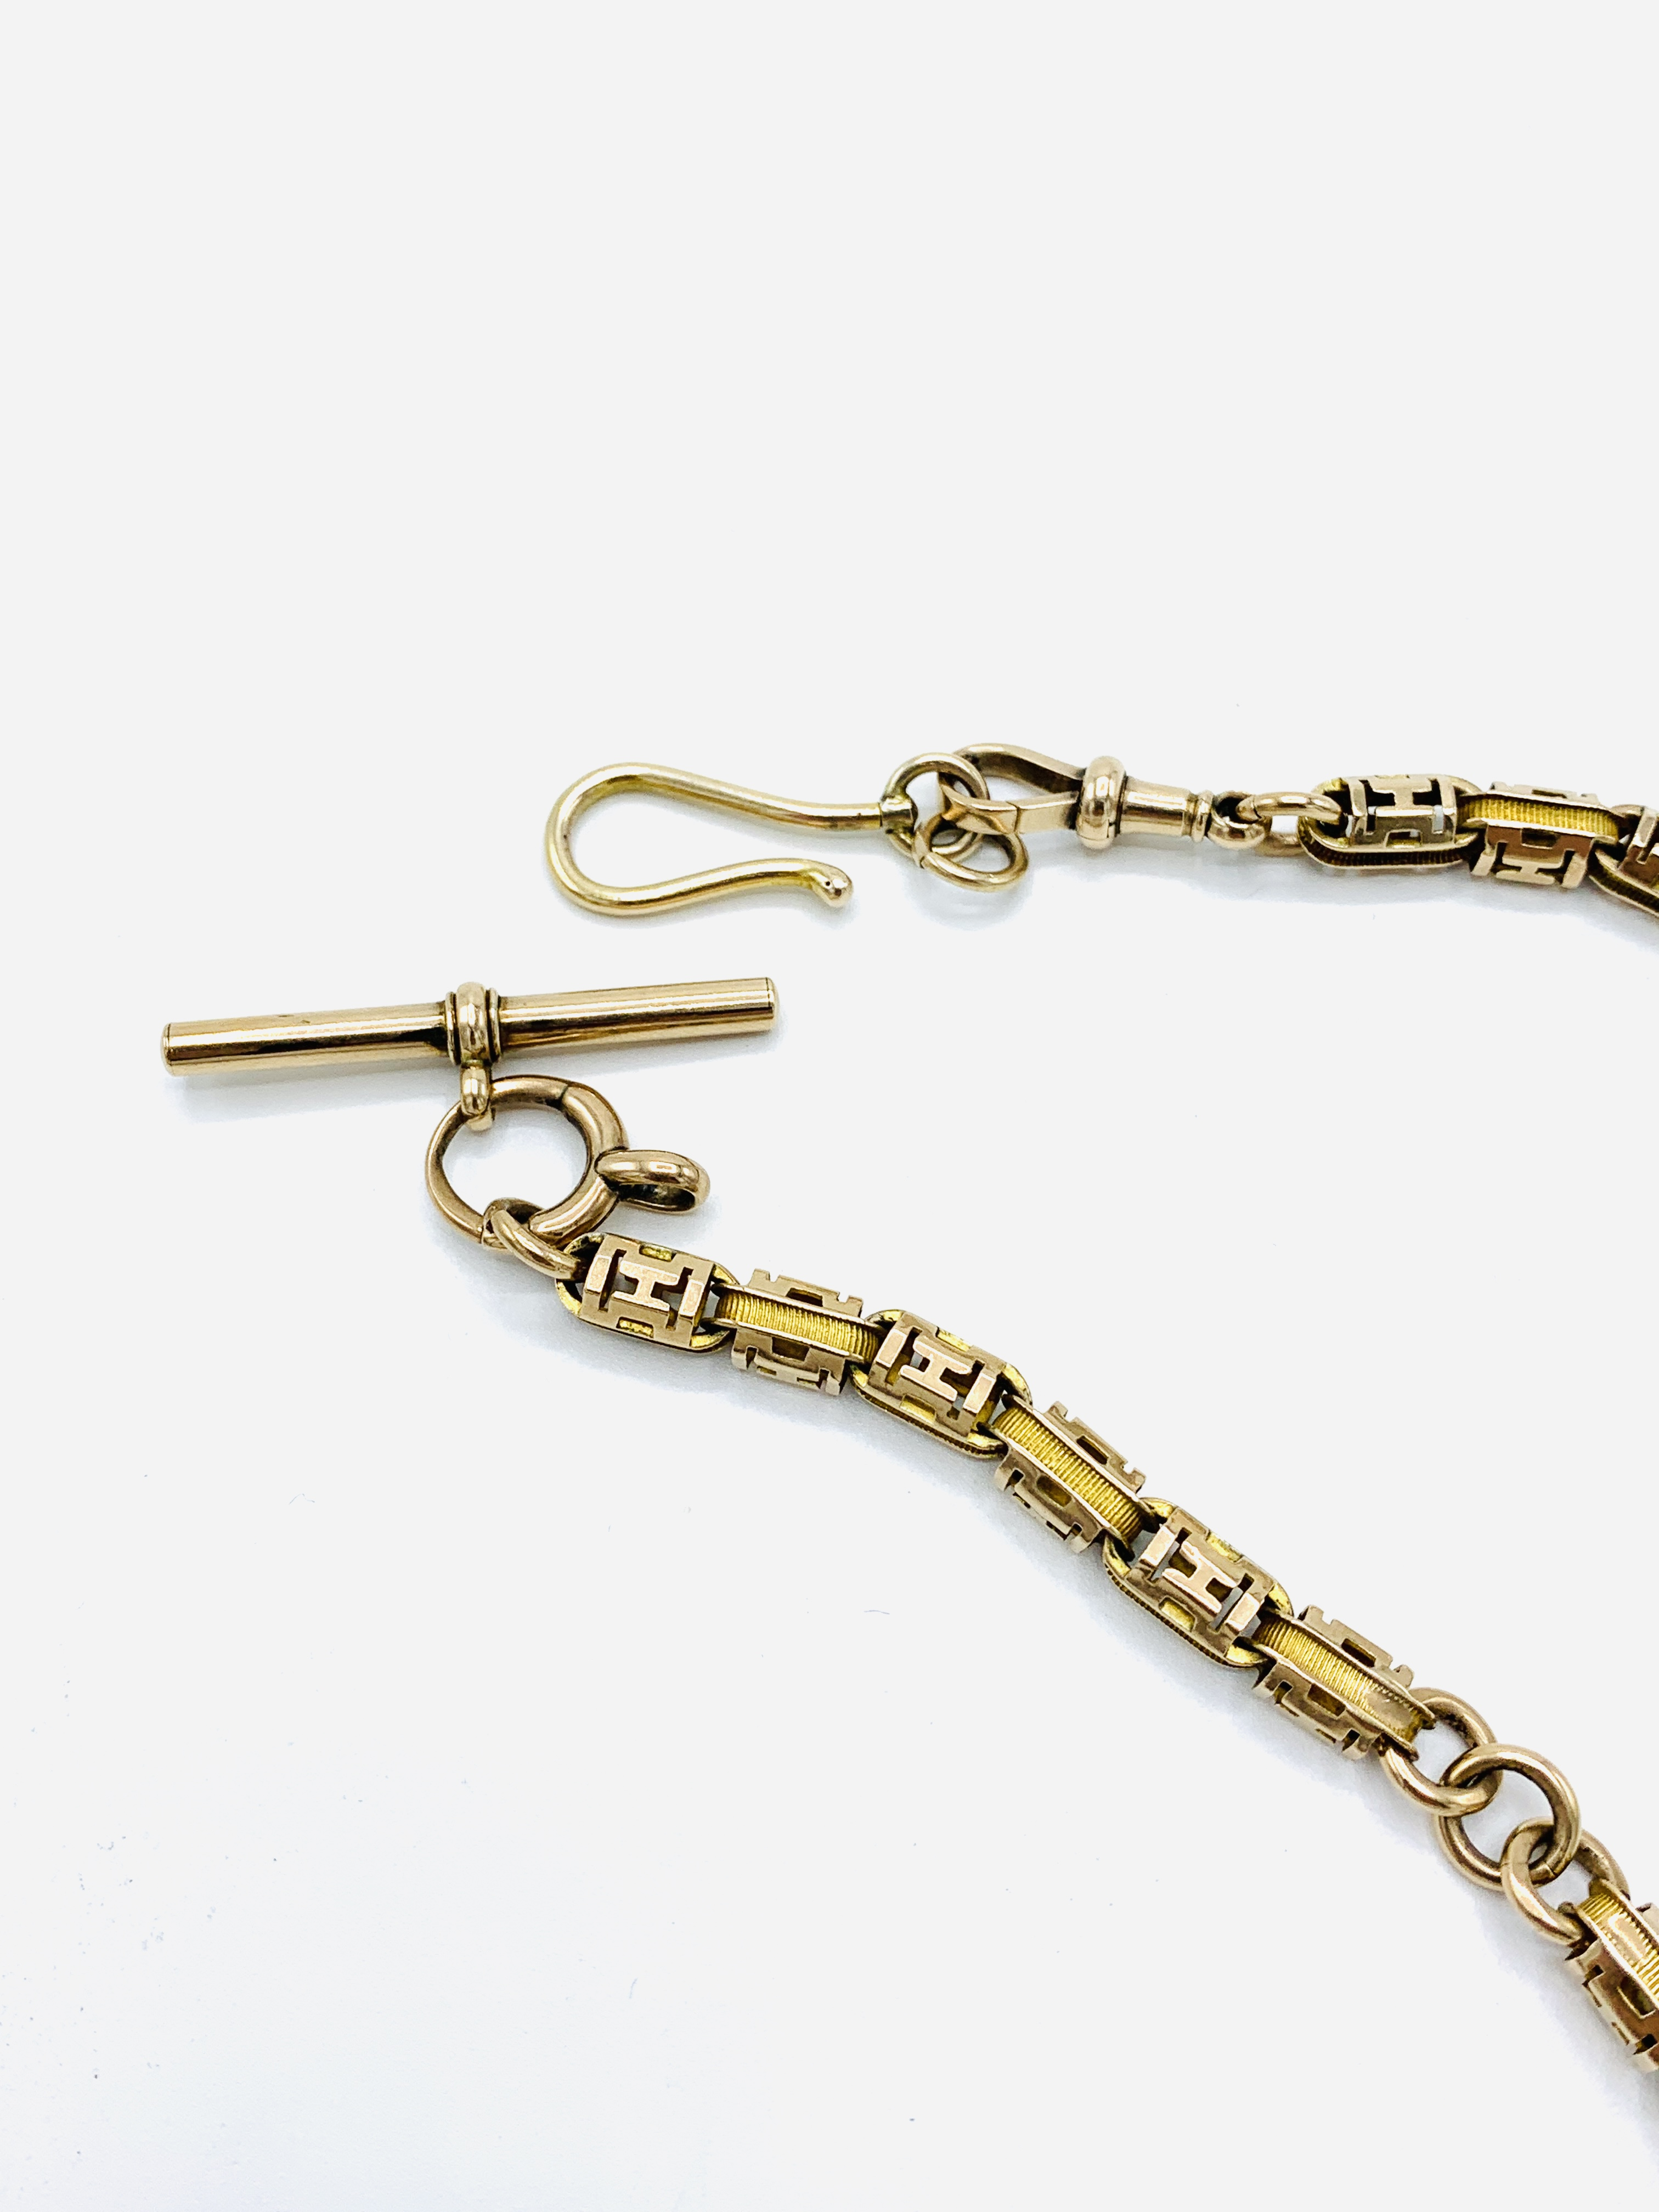 9ct gold pocket watch fob with hook clasp - Image 3 of 4